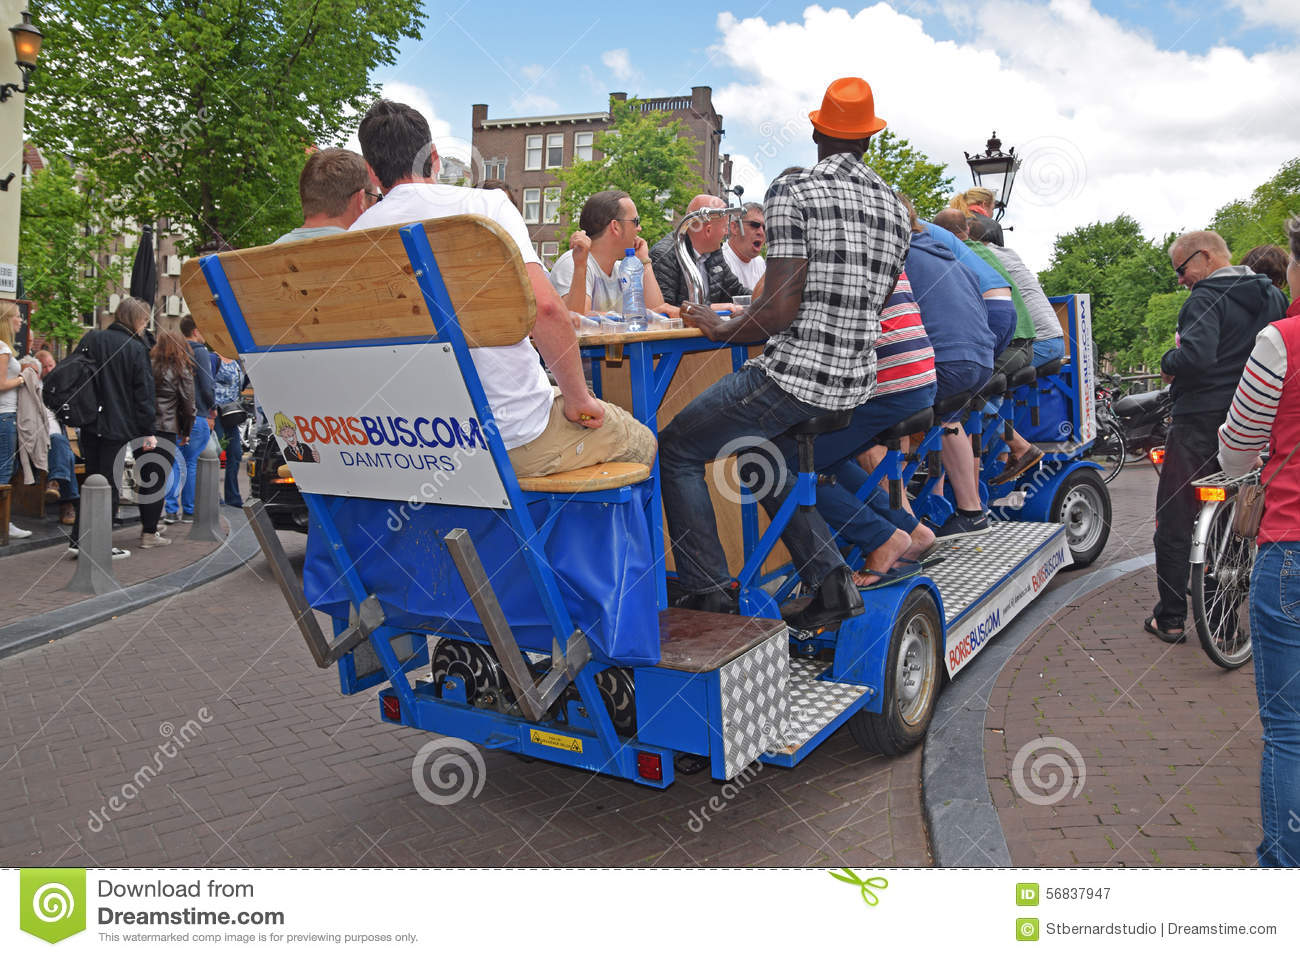 Example of Party Bike in Amsterdam with passengers having a lot of fun together